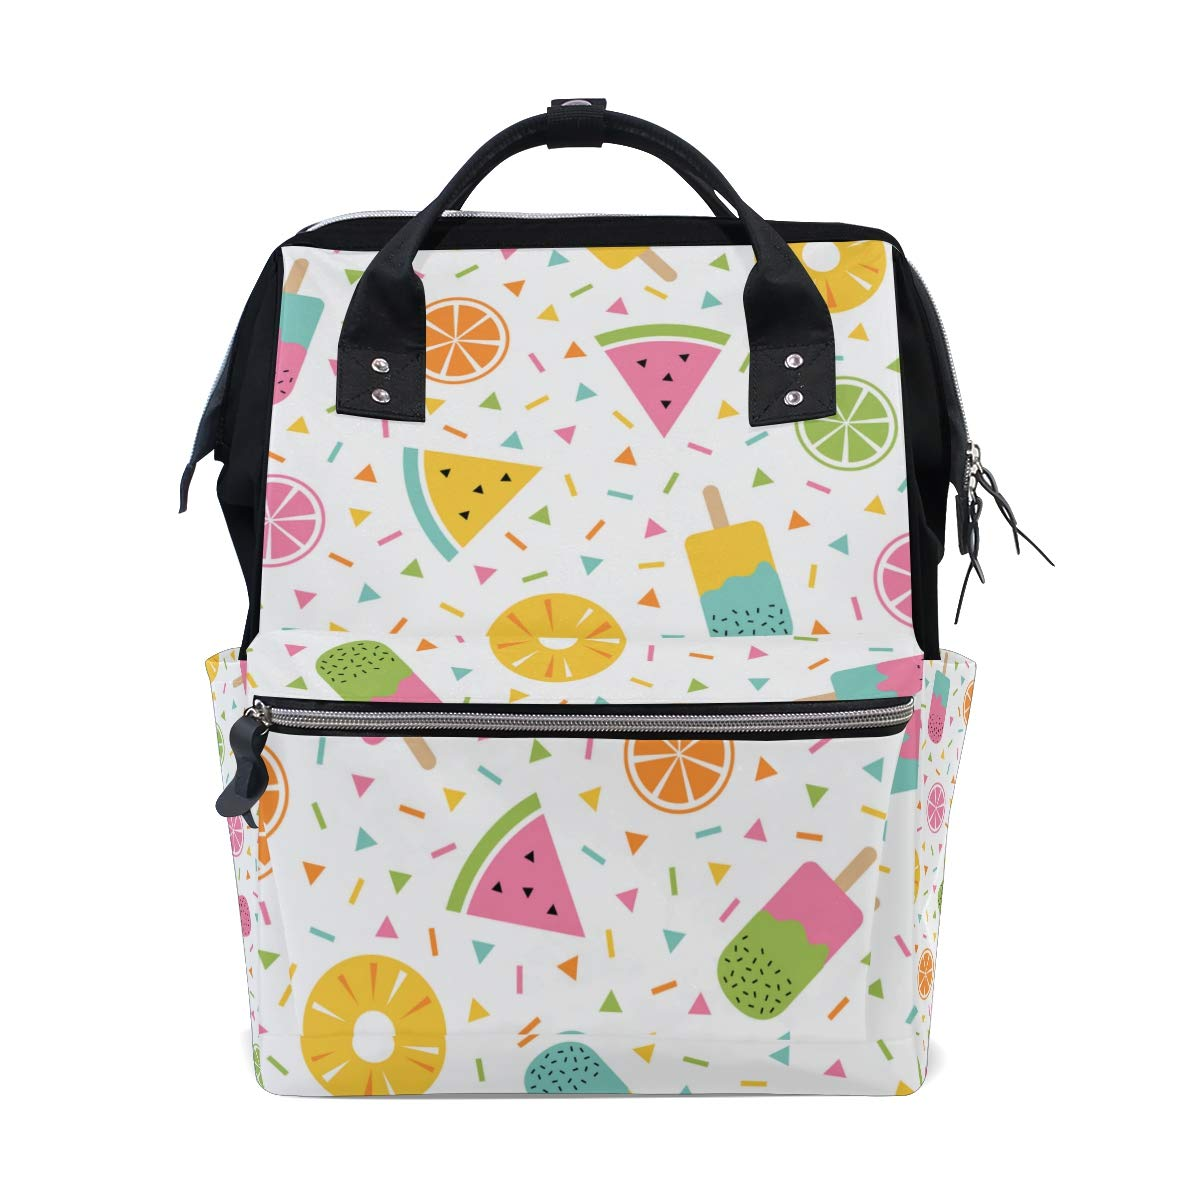 A Seed Backpack Baby Diaper Bag Watermelon Summer Popsicle for Girls Women Tote Daypack Bookbag